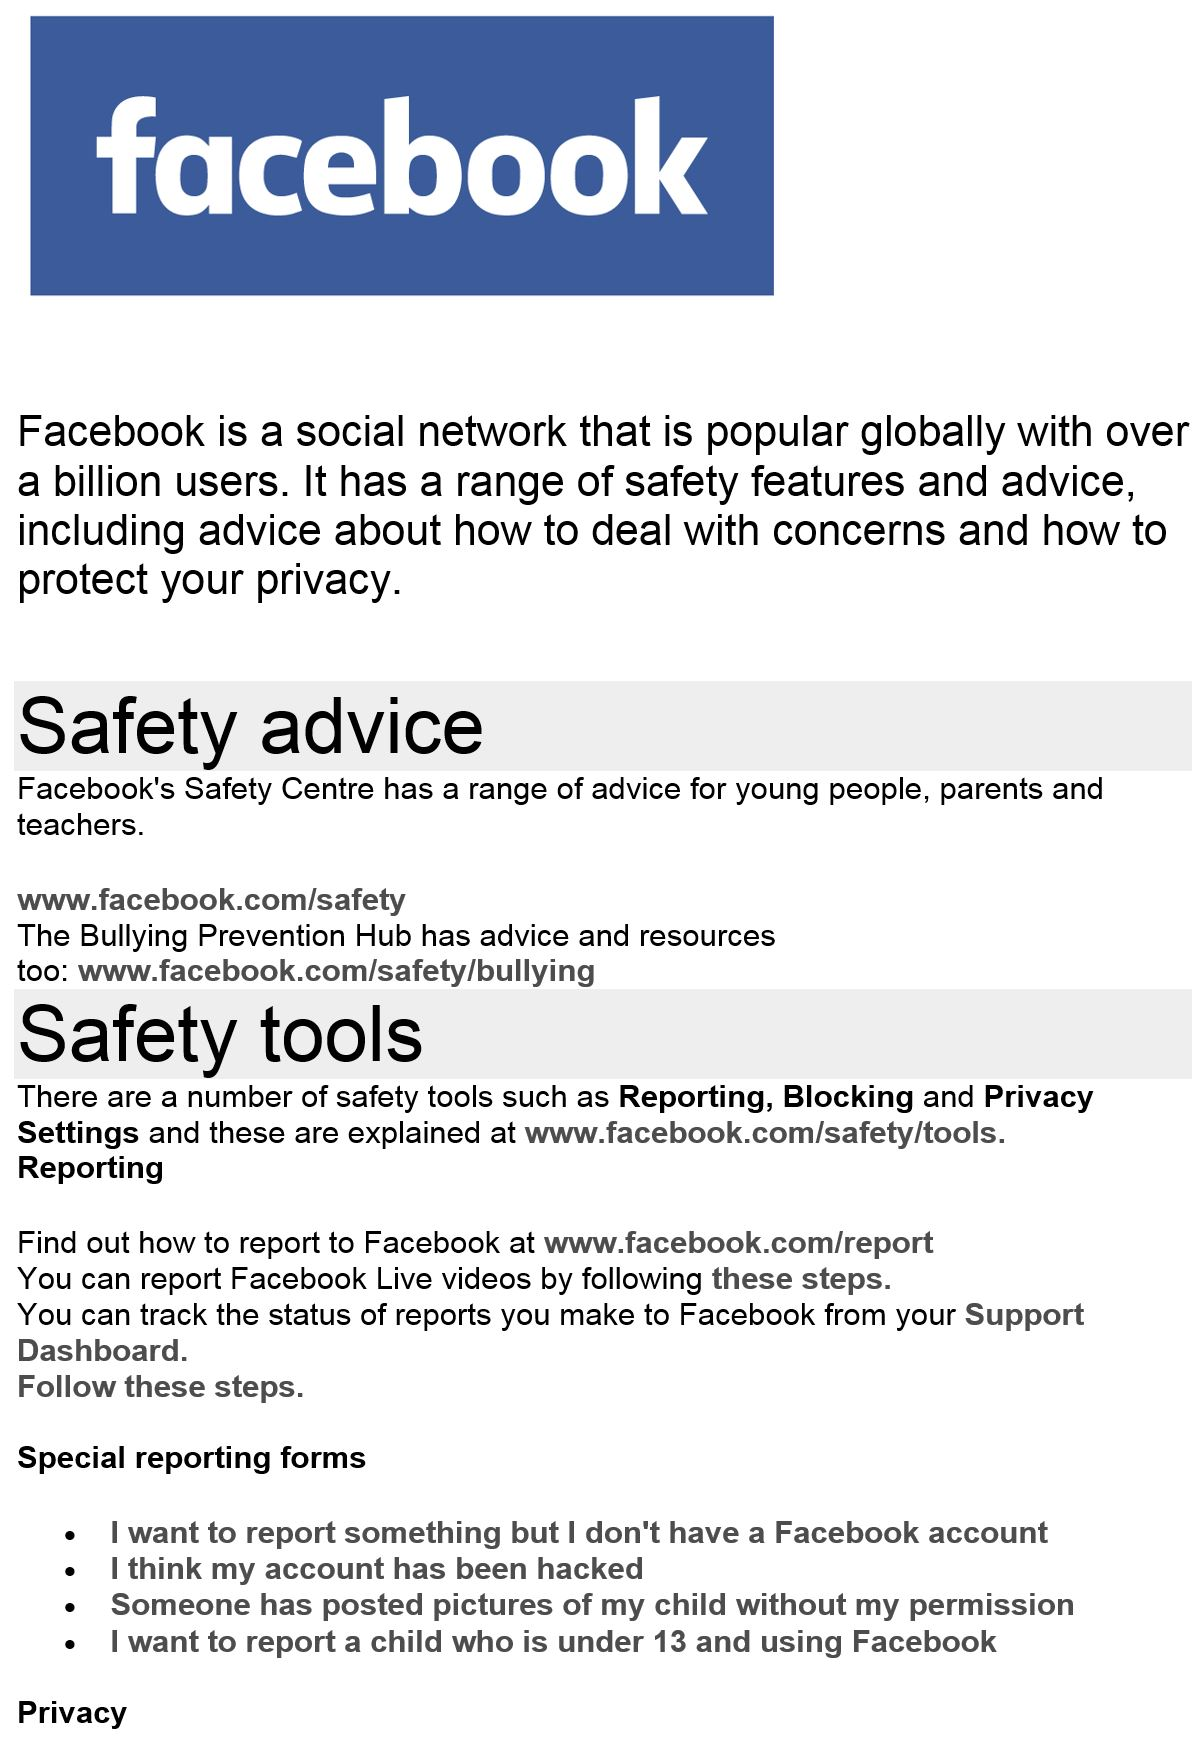 facebook safety 1